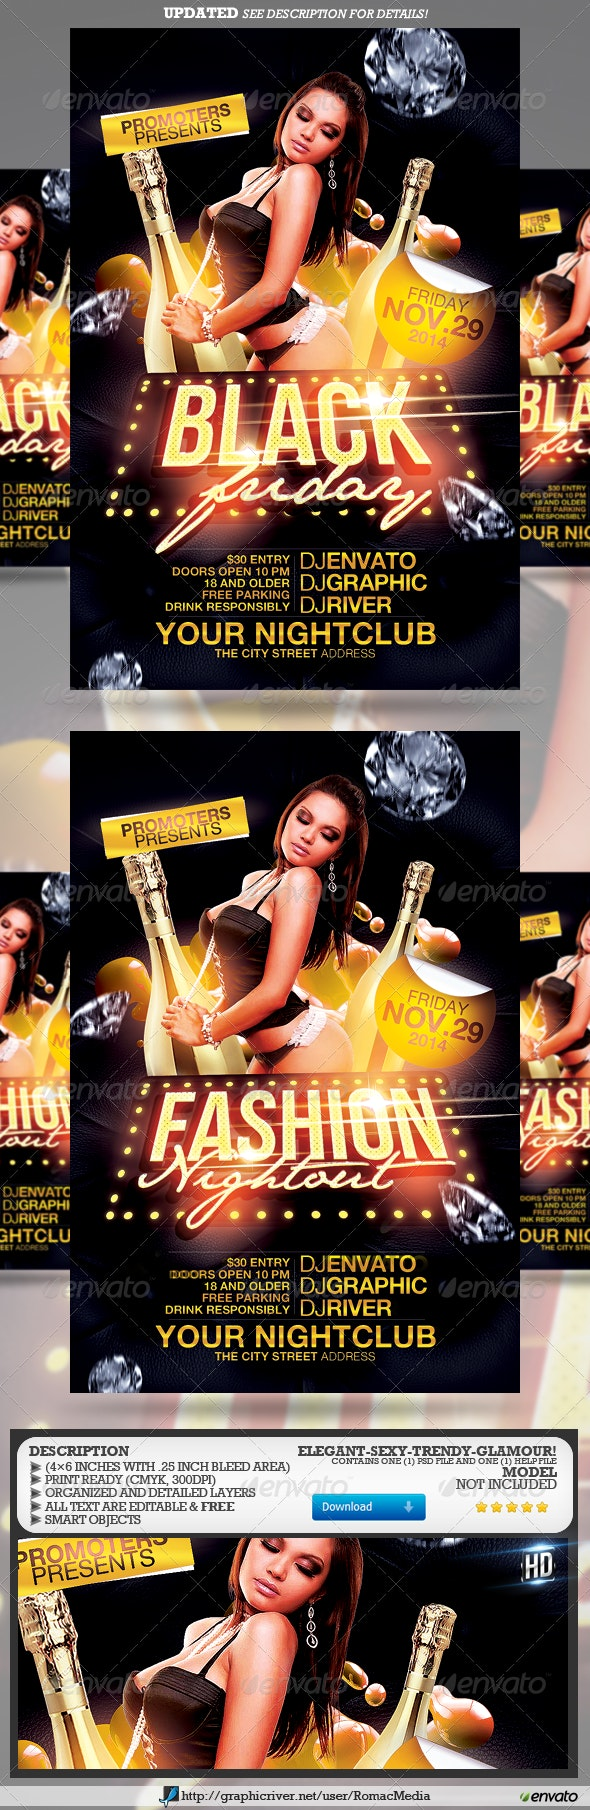 Black Friday Fashion Night-out Party Flyer - Clubs & Parties Events